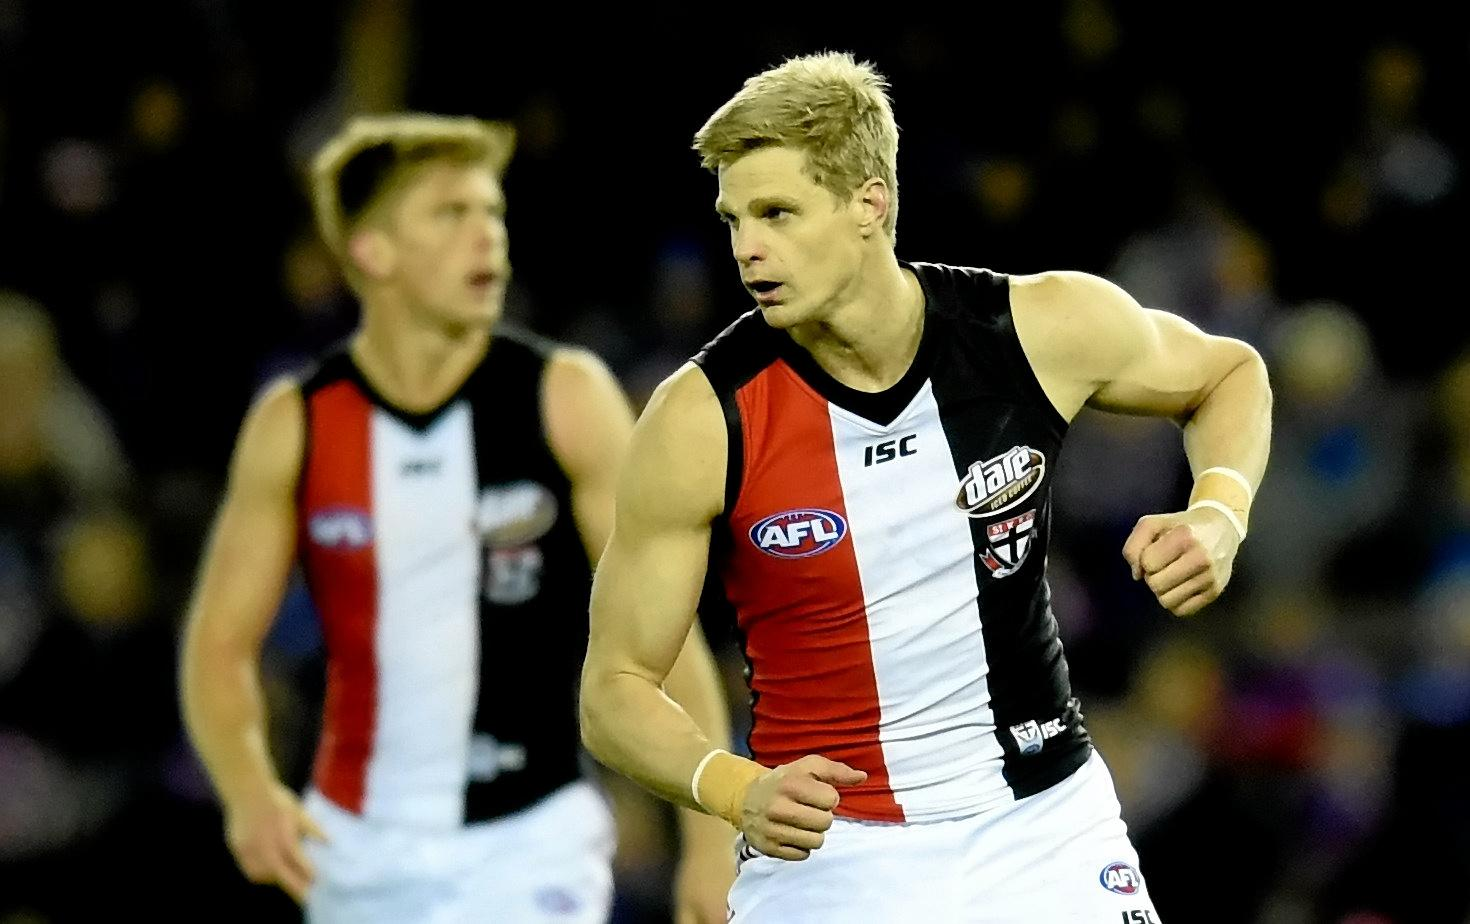 Nick Riewoldt has relinquished the Saints' captaincy.